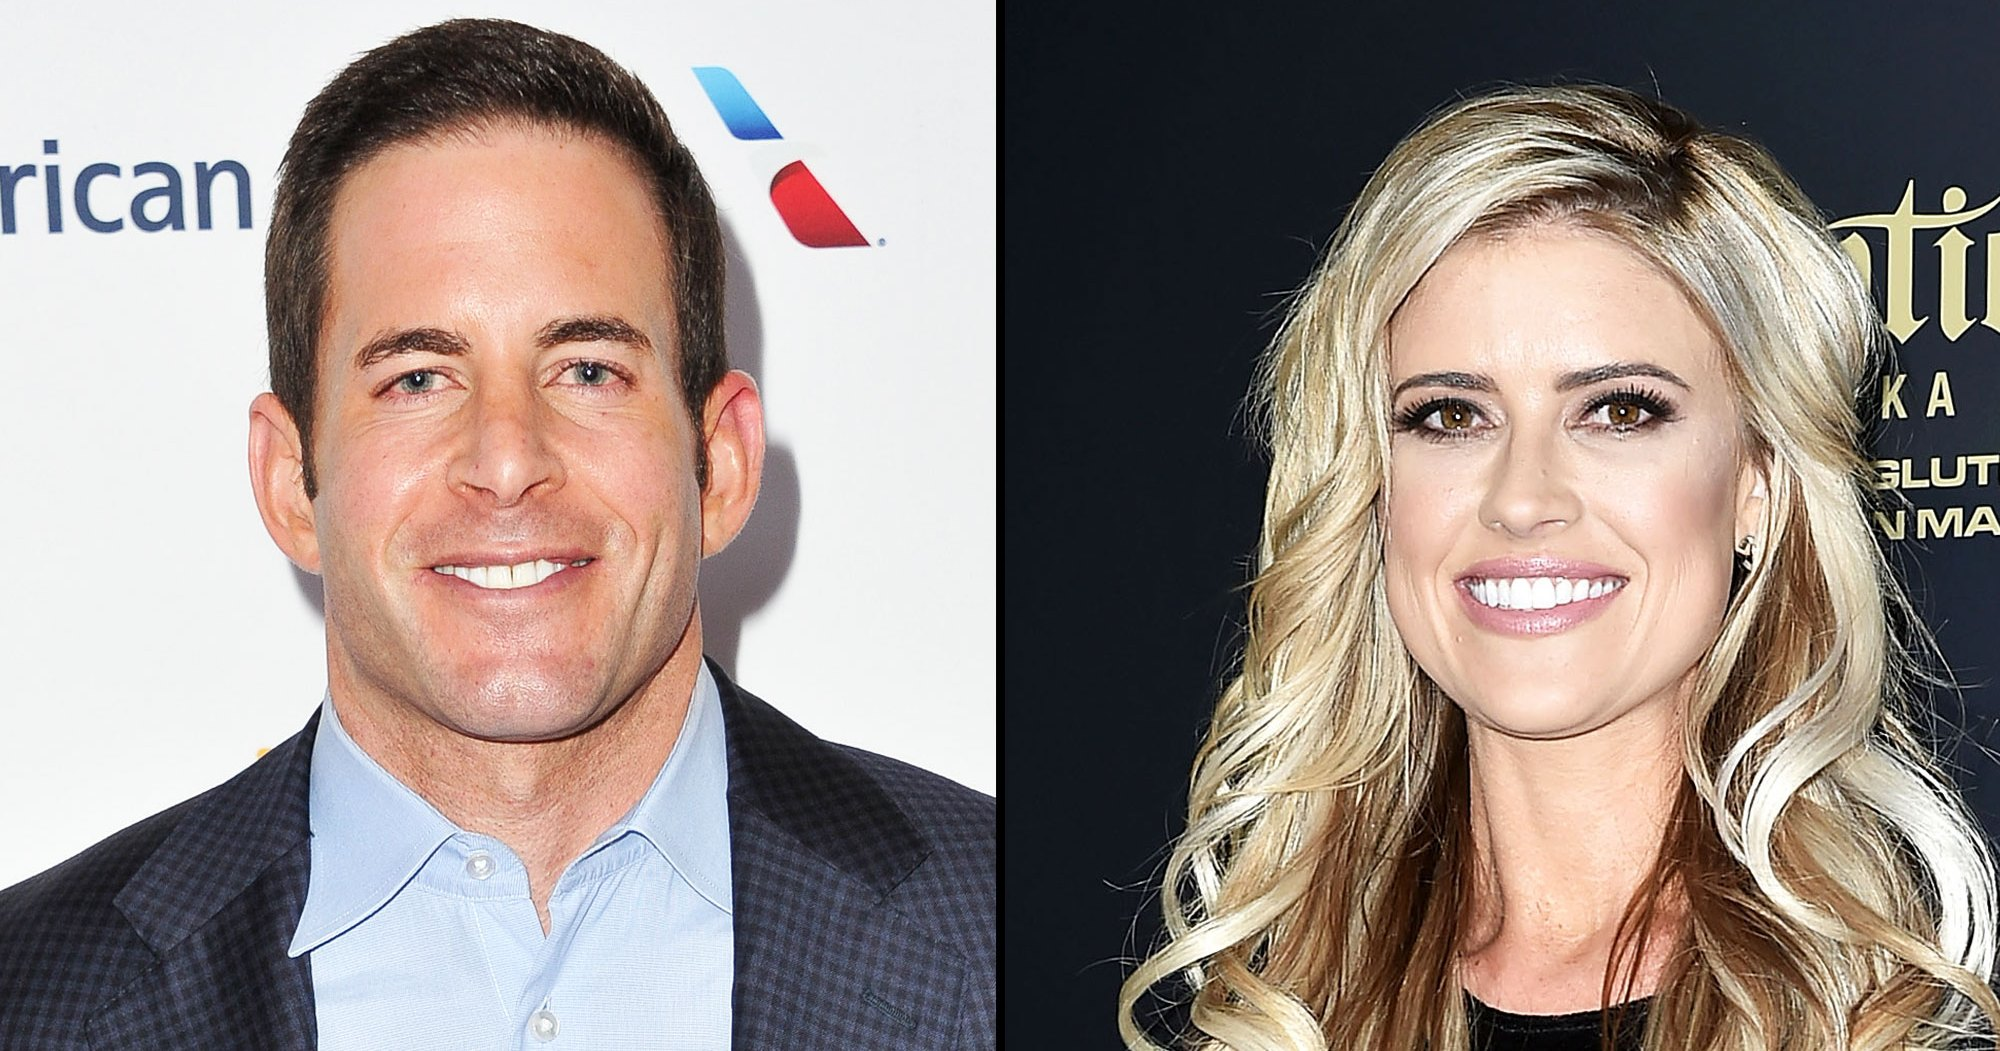 Tarek El Moussa Is on 'Daddy Duty,' Christina El Moussa Honeymoons